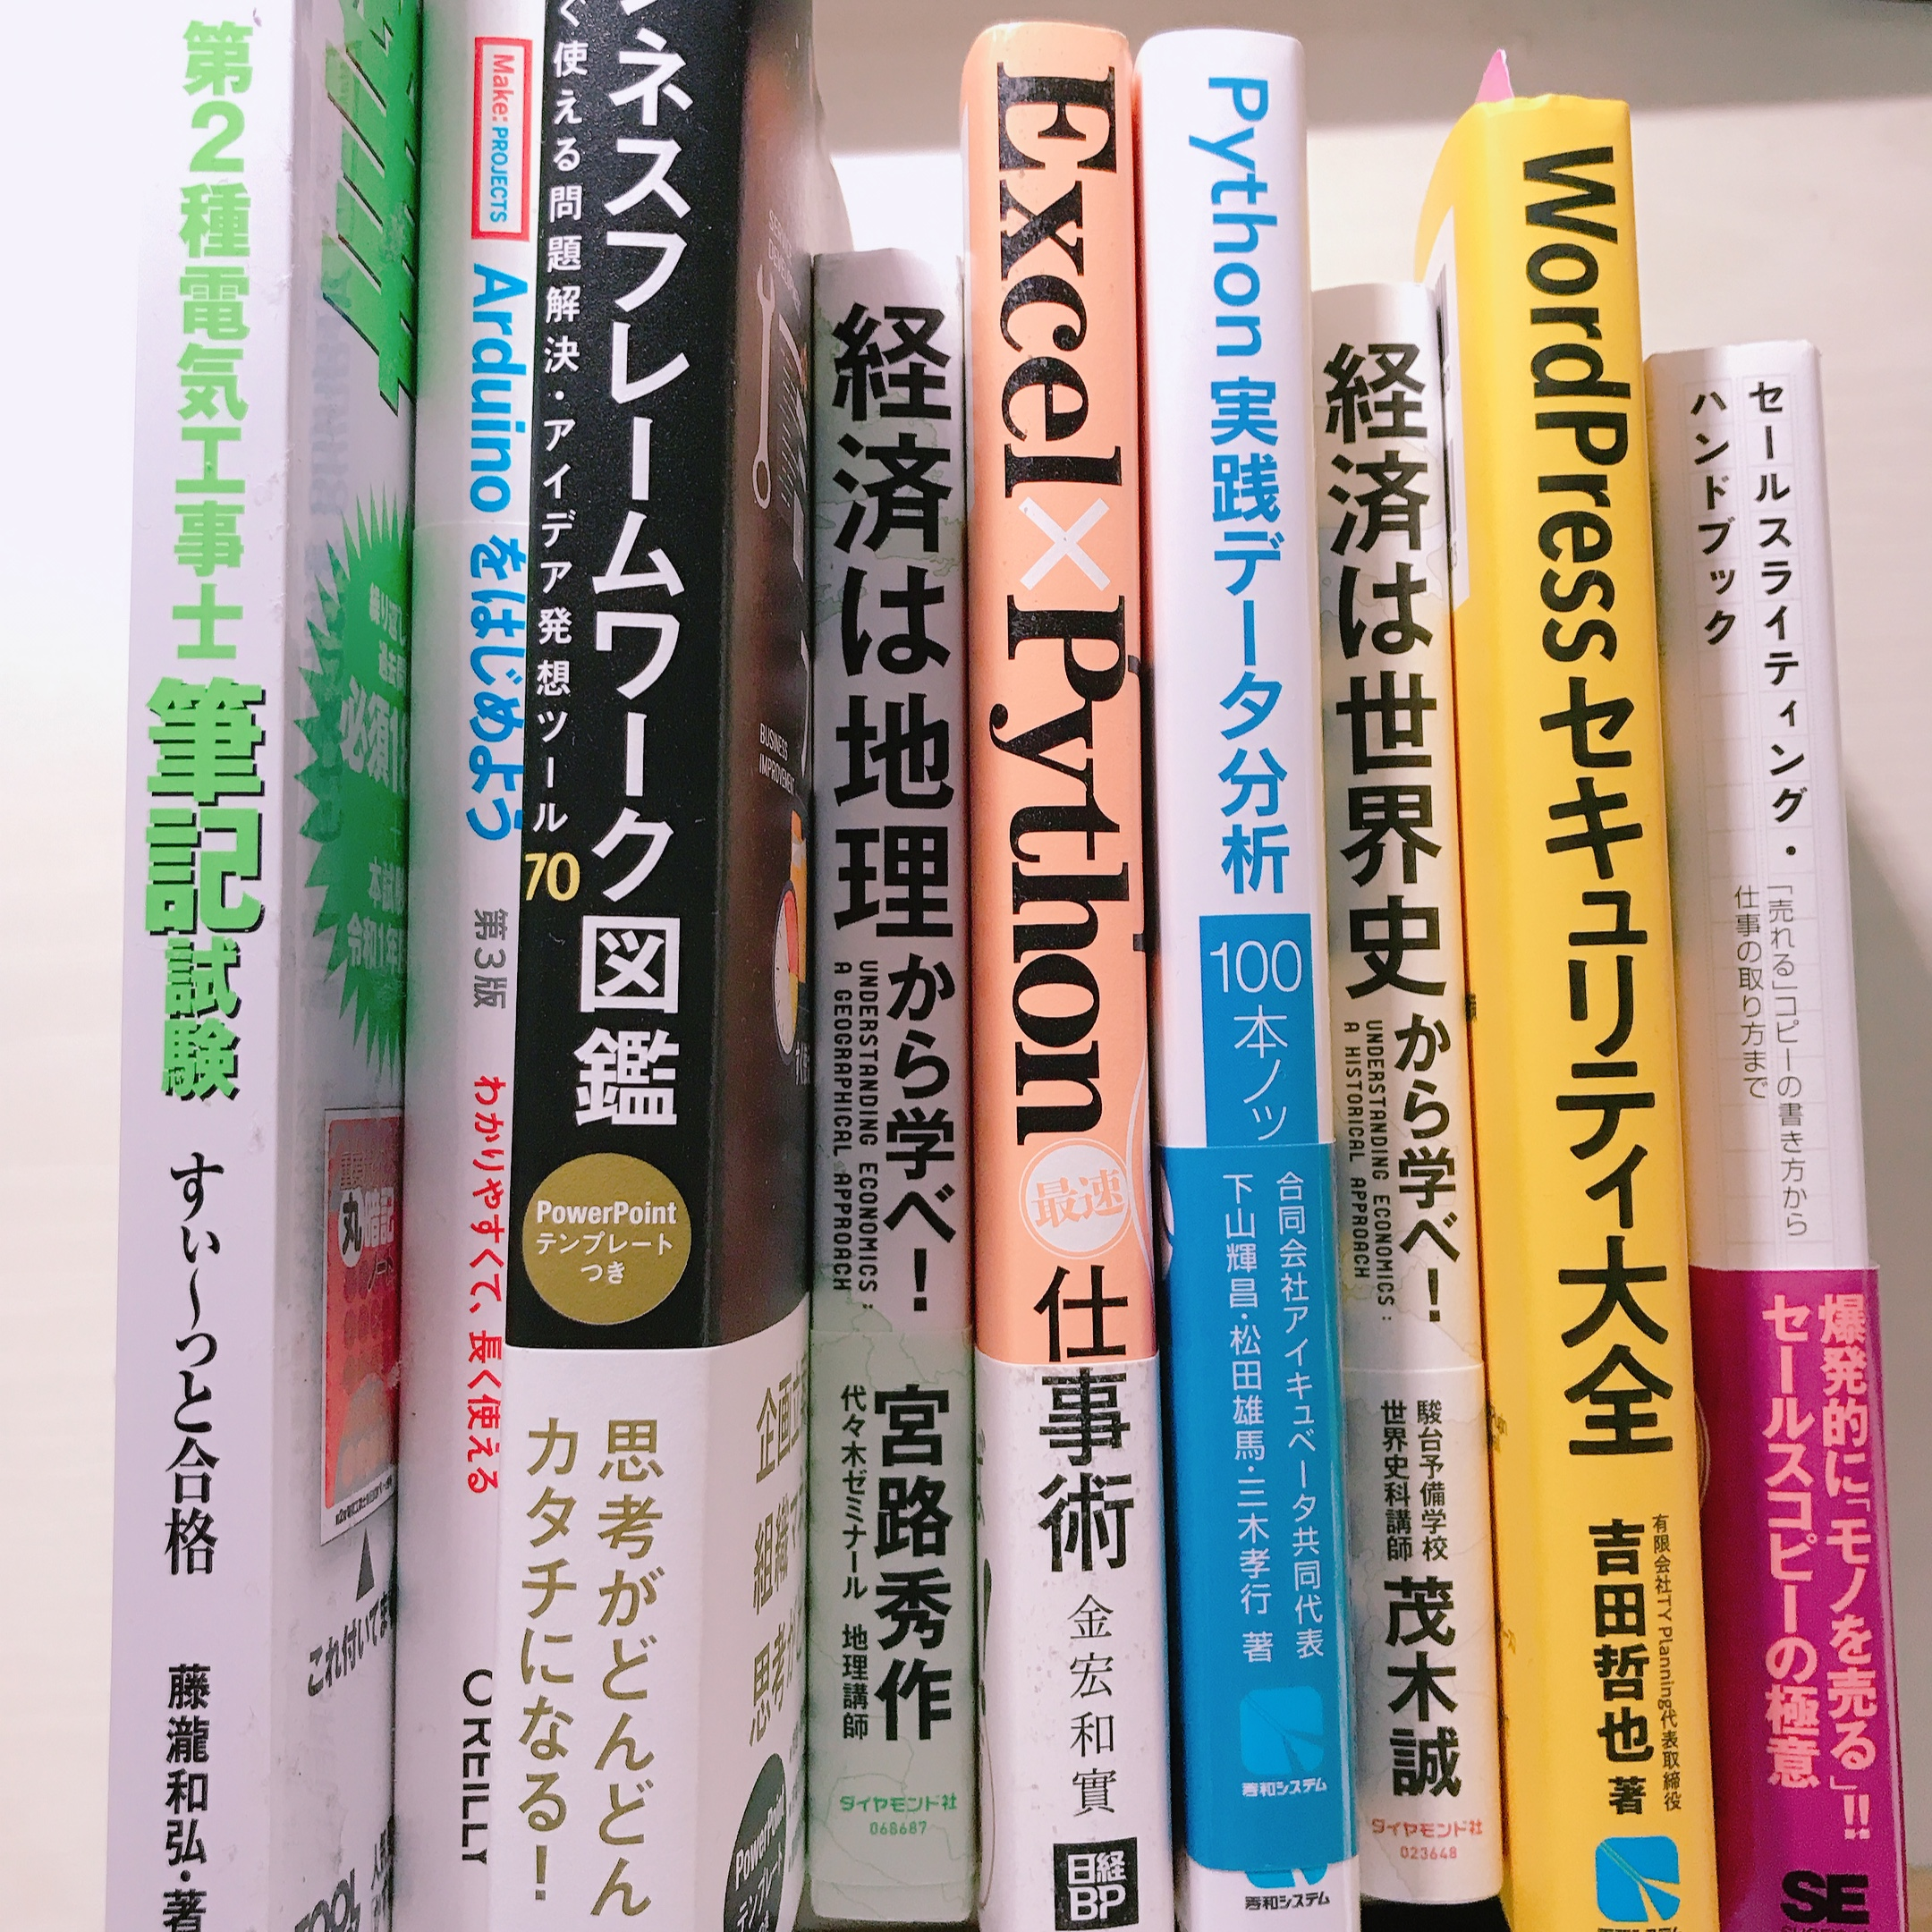 books-recommend-to-read